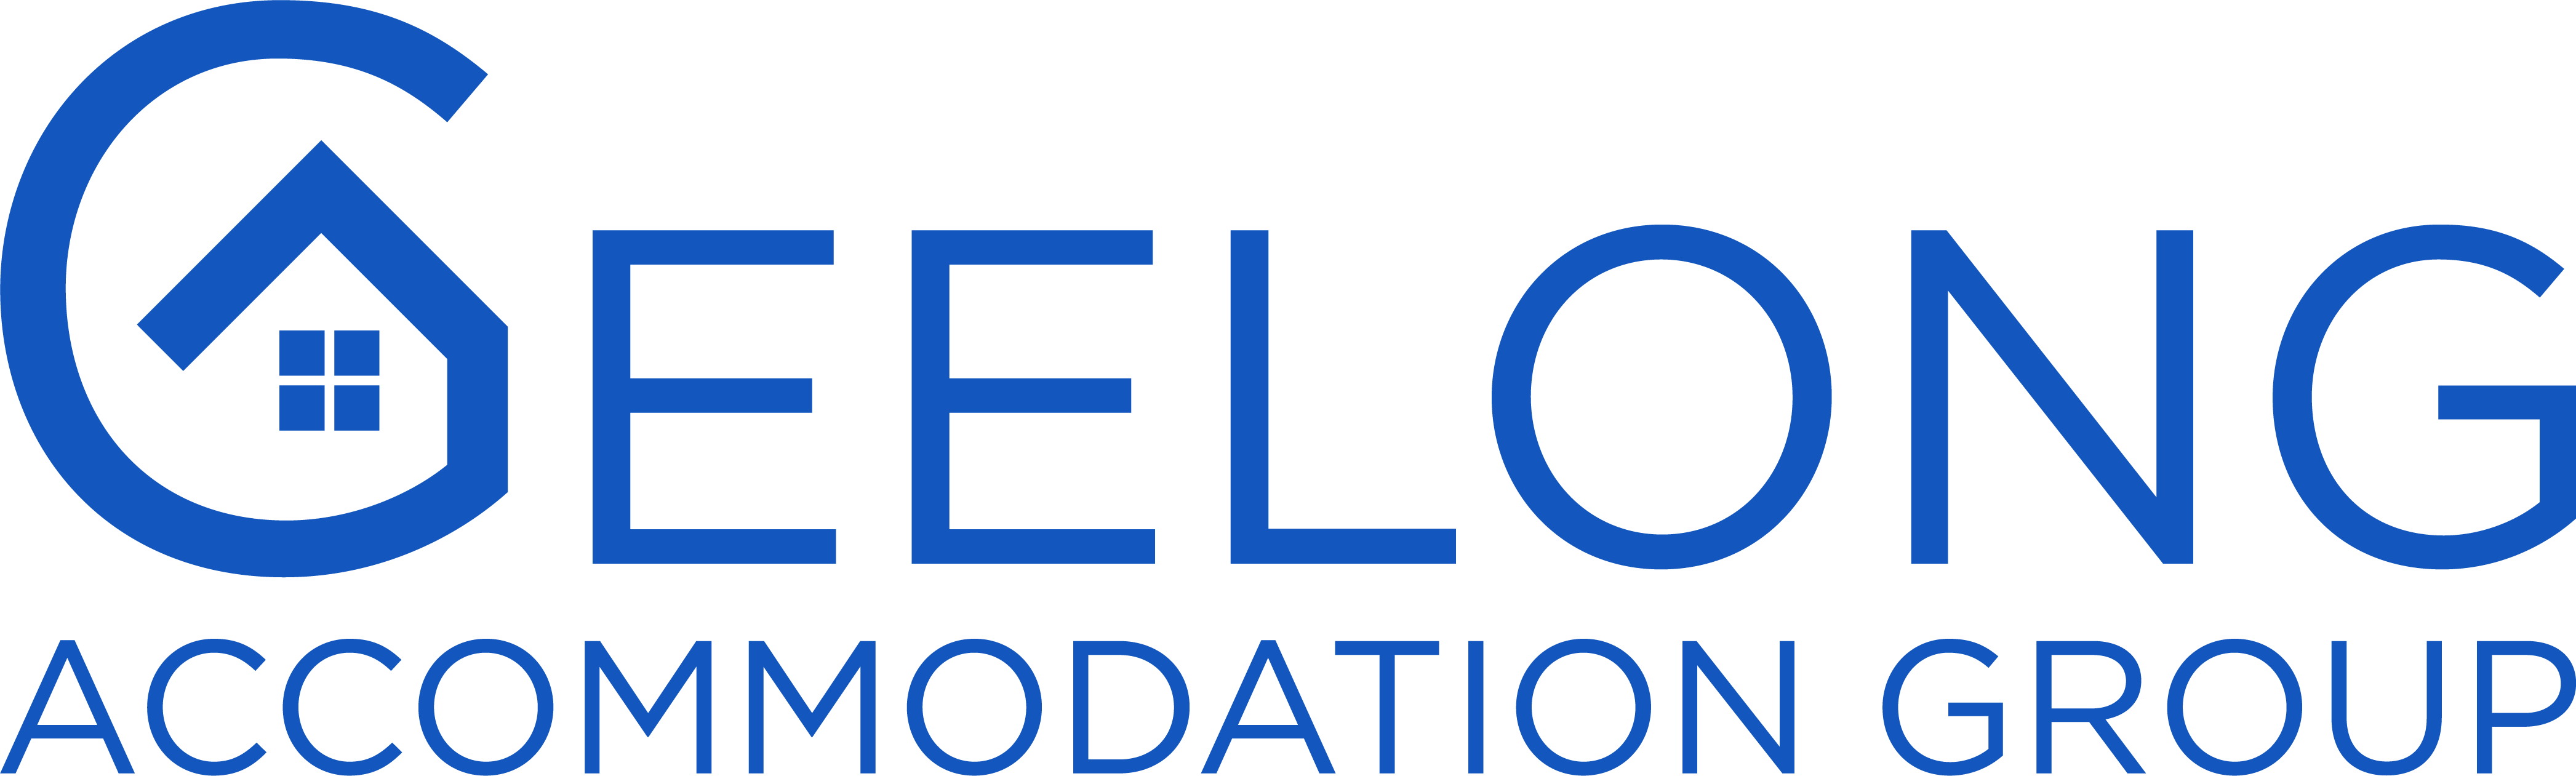 Geelong Accommodation Group Alt Logo